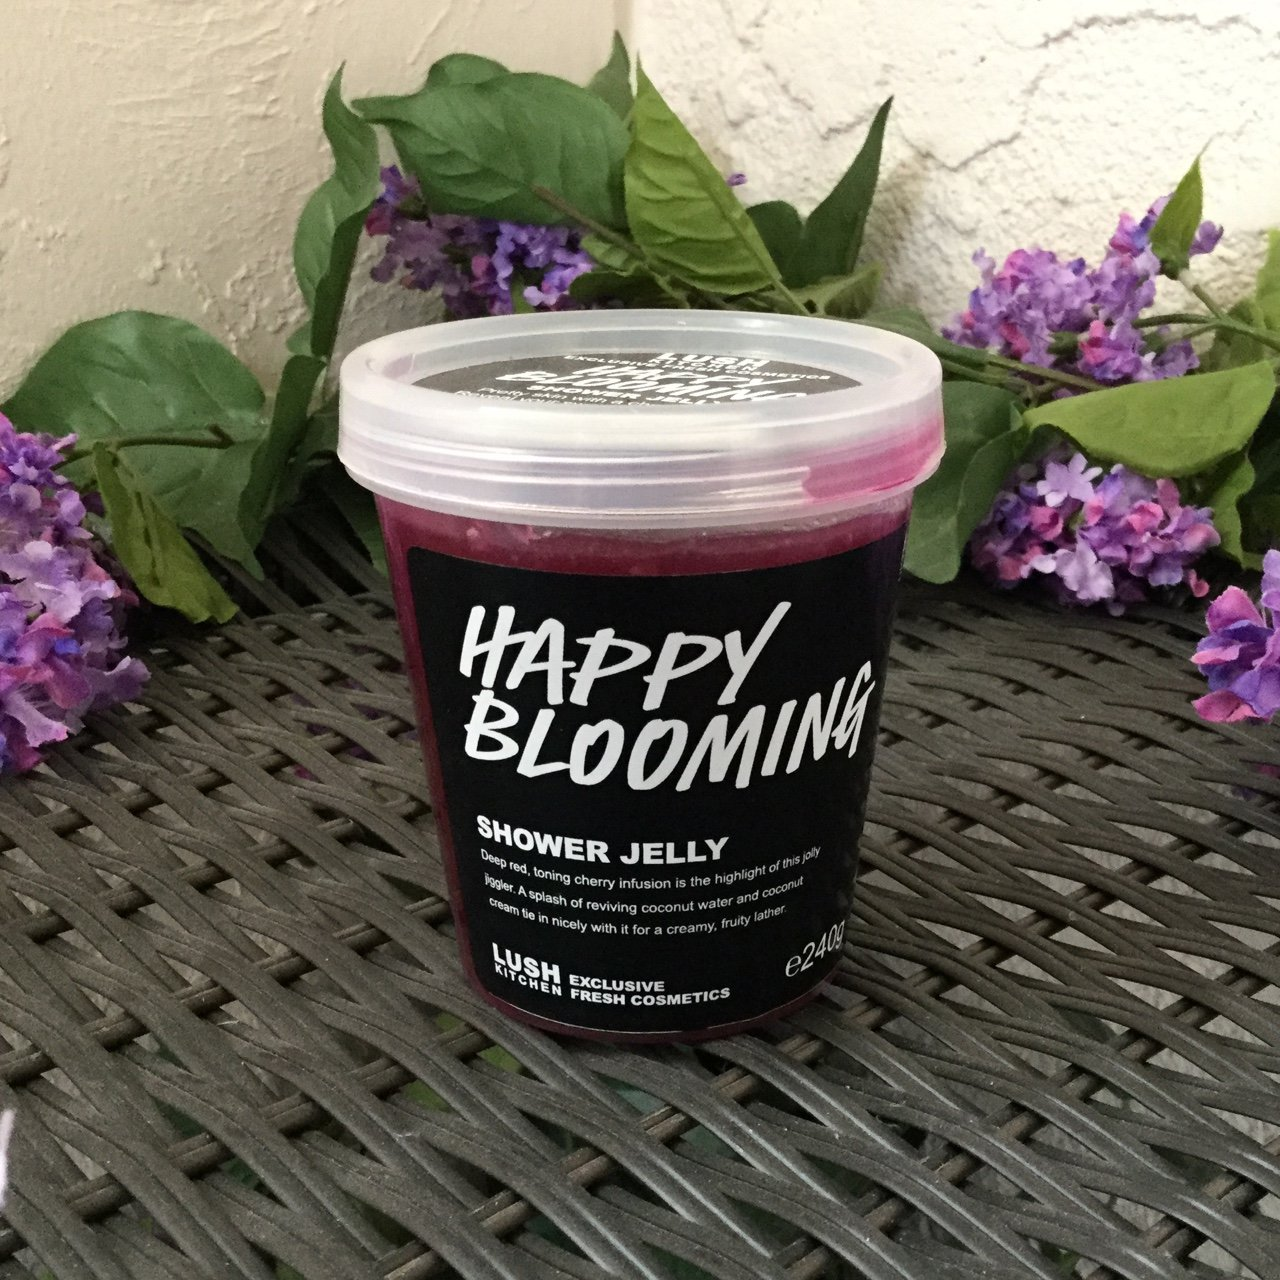 Updated Price Lowered Happy Blooming Shower Jelly From The Depop